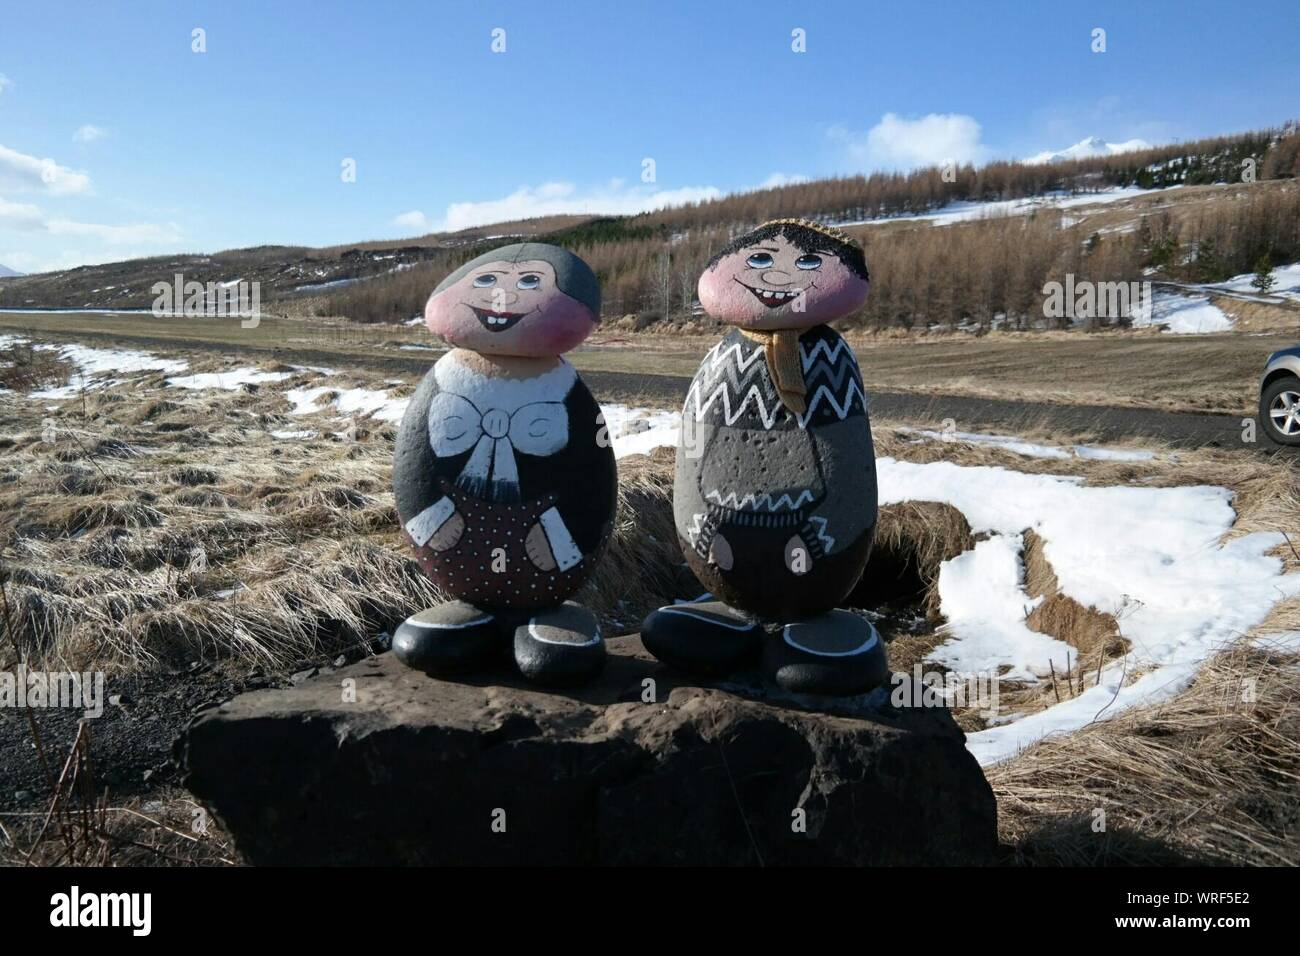 Humans Painted On Stones Against Landscape Stock Photo